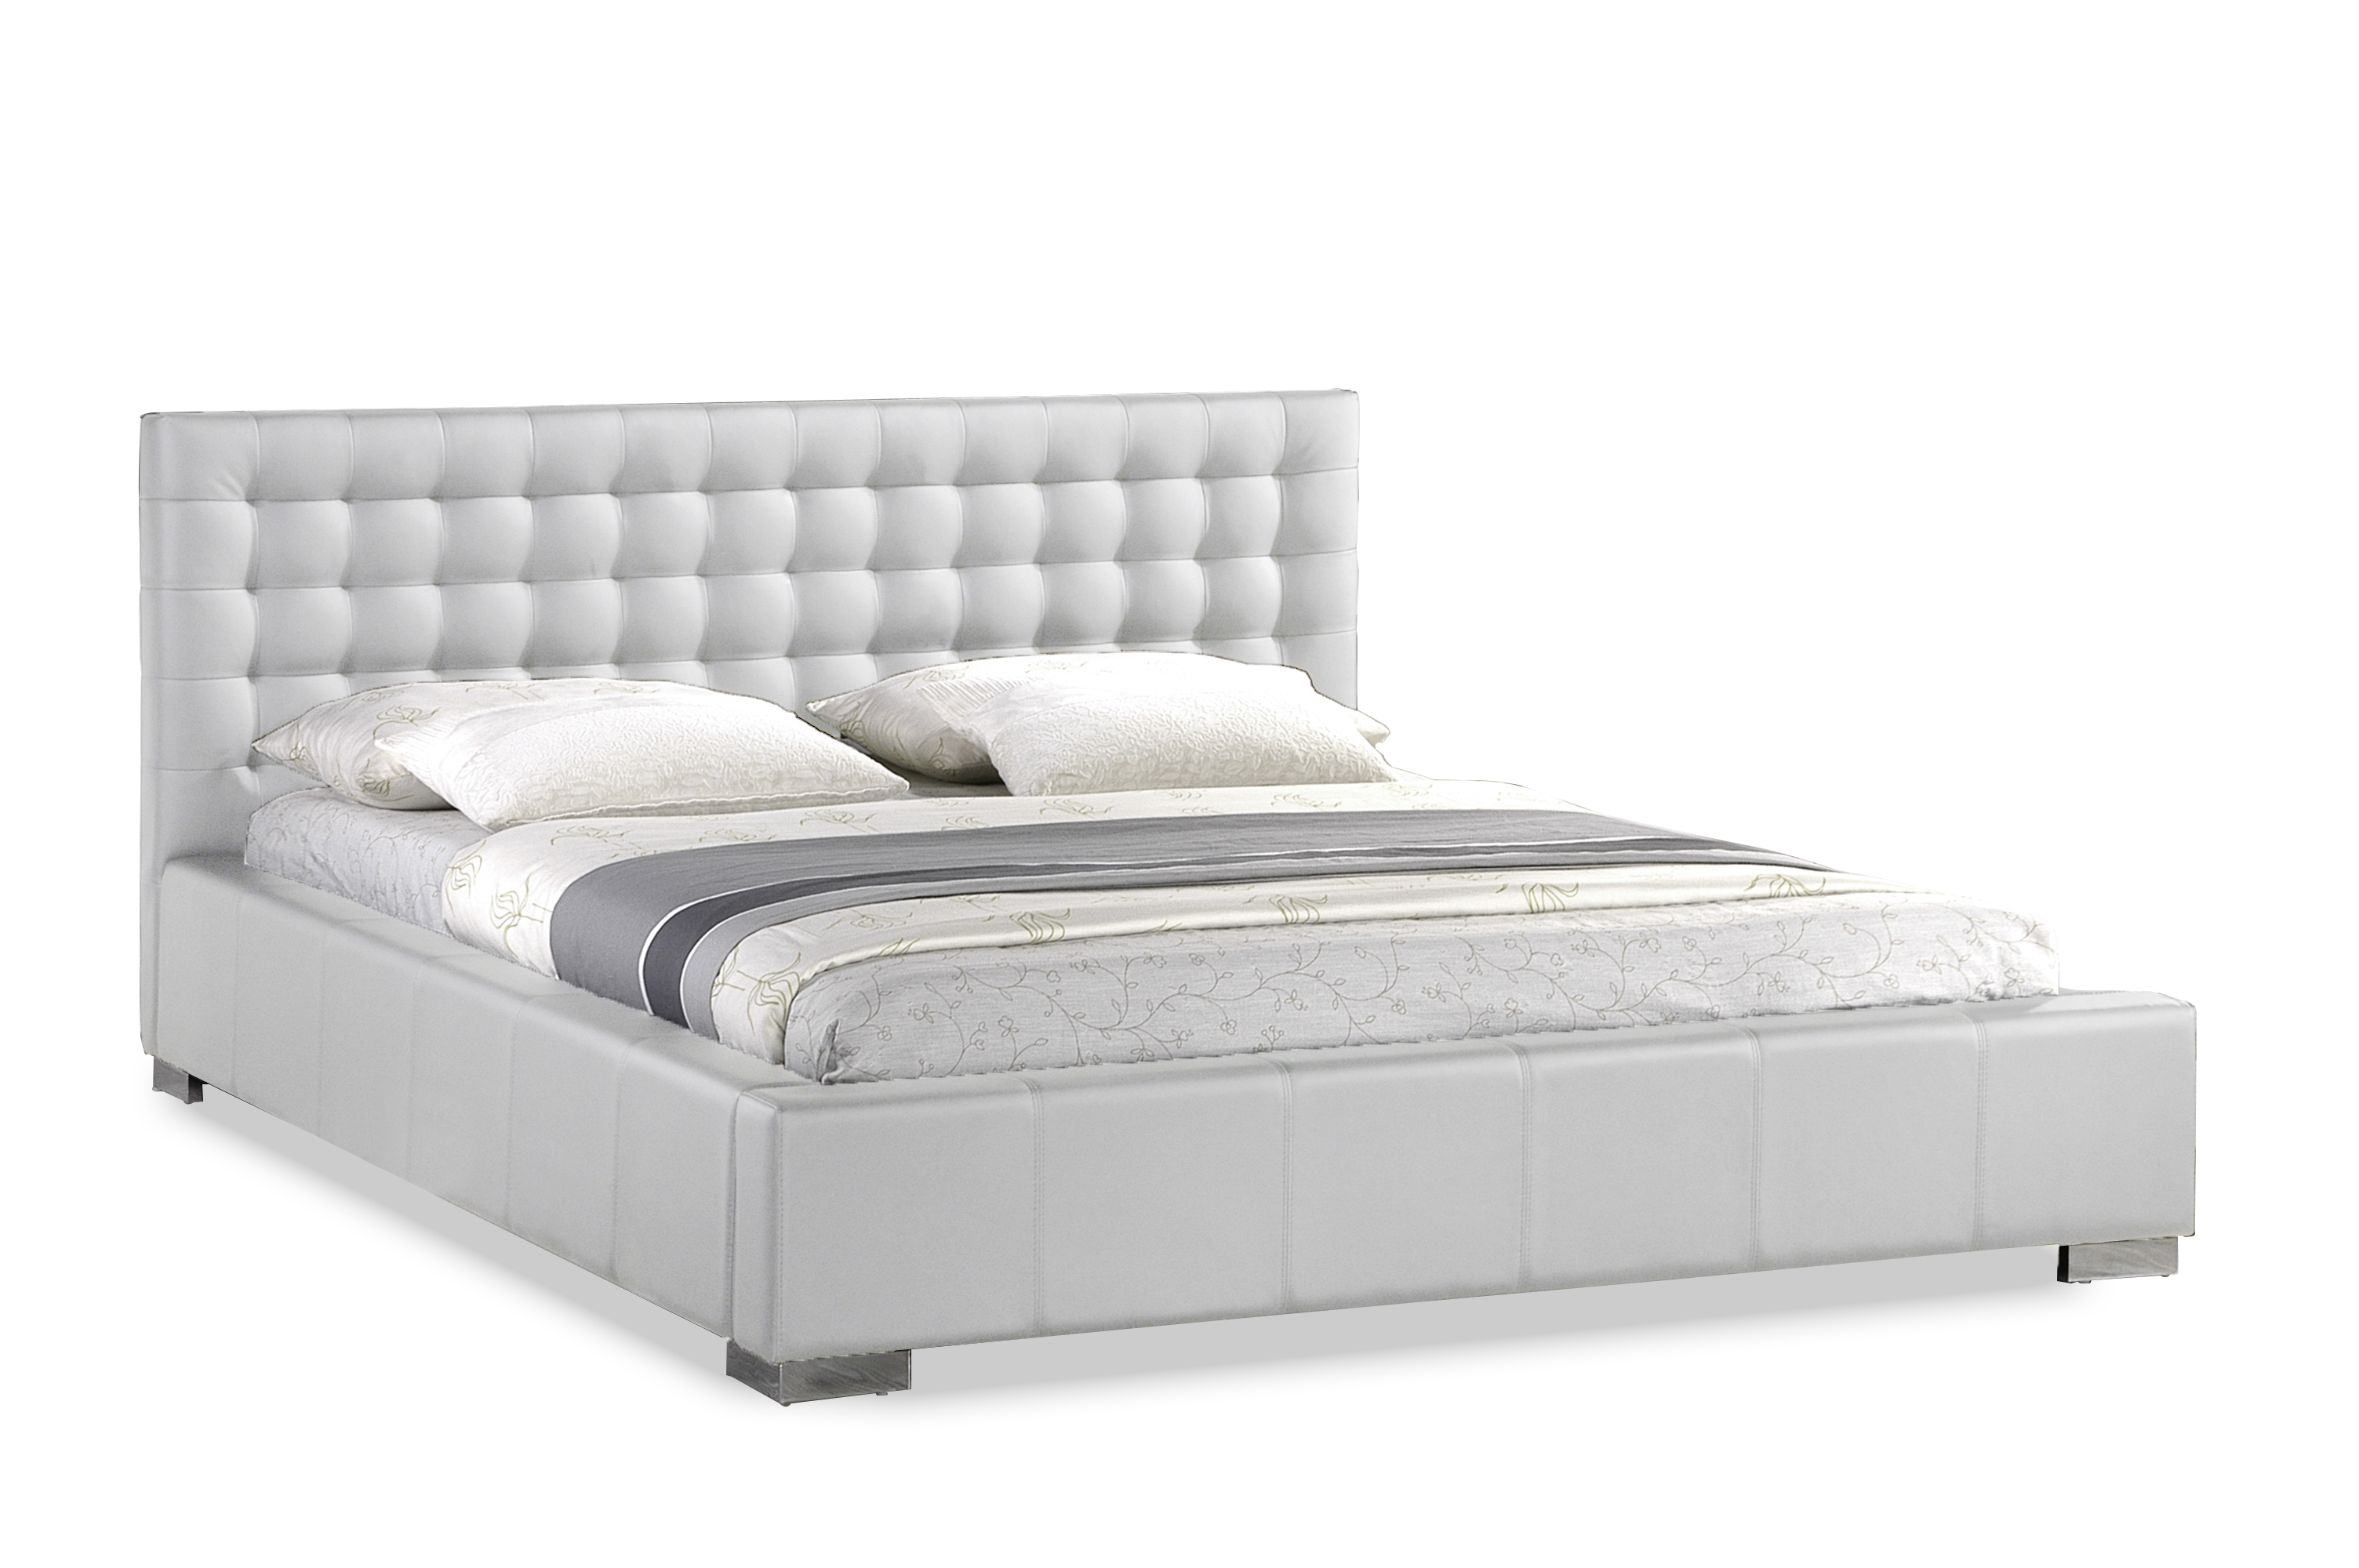 Madison White Modern Bed With Upholstered Headboard   King Size |  Affordable Modern Furniture In Chicago